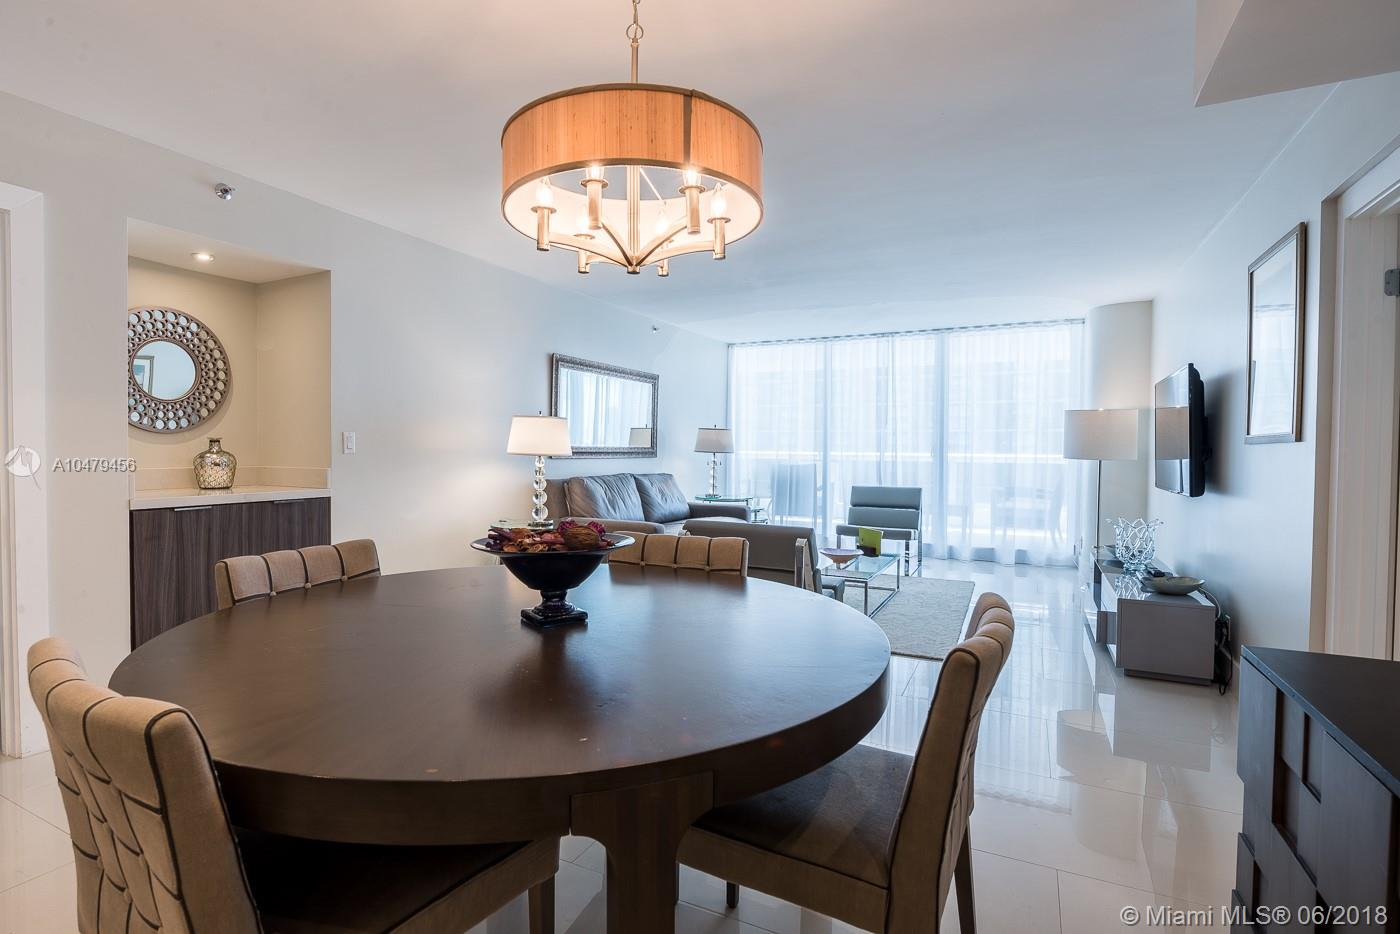 Furnished 3Br/2Ba Bayfront Condo In The Grand. Located In The Heart Of Miami+Ógé¼Gäós Exclusive Arts + Entertainment District, Just One Mile From The Port Of Miami, And Within Walking Distance The Adrienne Arsht Center For The Performing Arts, American Airlines Arena And Bayfront Park. Discover The Fun, Food And Shops At Bayside Marketplace Or Enjoy The Proximity To Brickell, Midtown, Design District And Wynwood Arts District. Margaret Pace Park Is Right Next To The Building With Lighted Basketball, Tennis And A Volleyball Courts. Visit Sea Isle Marina & Yachting Center In Our Backyard And Enjoy A Scenic Charter To South Beach